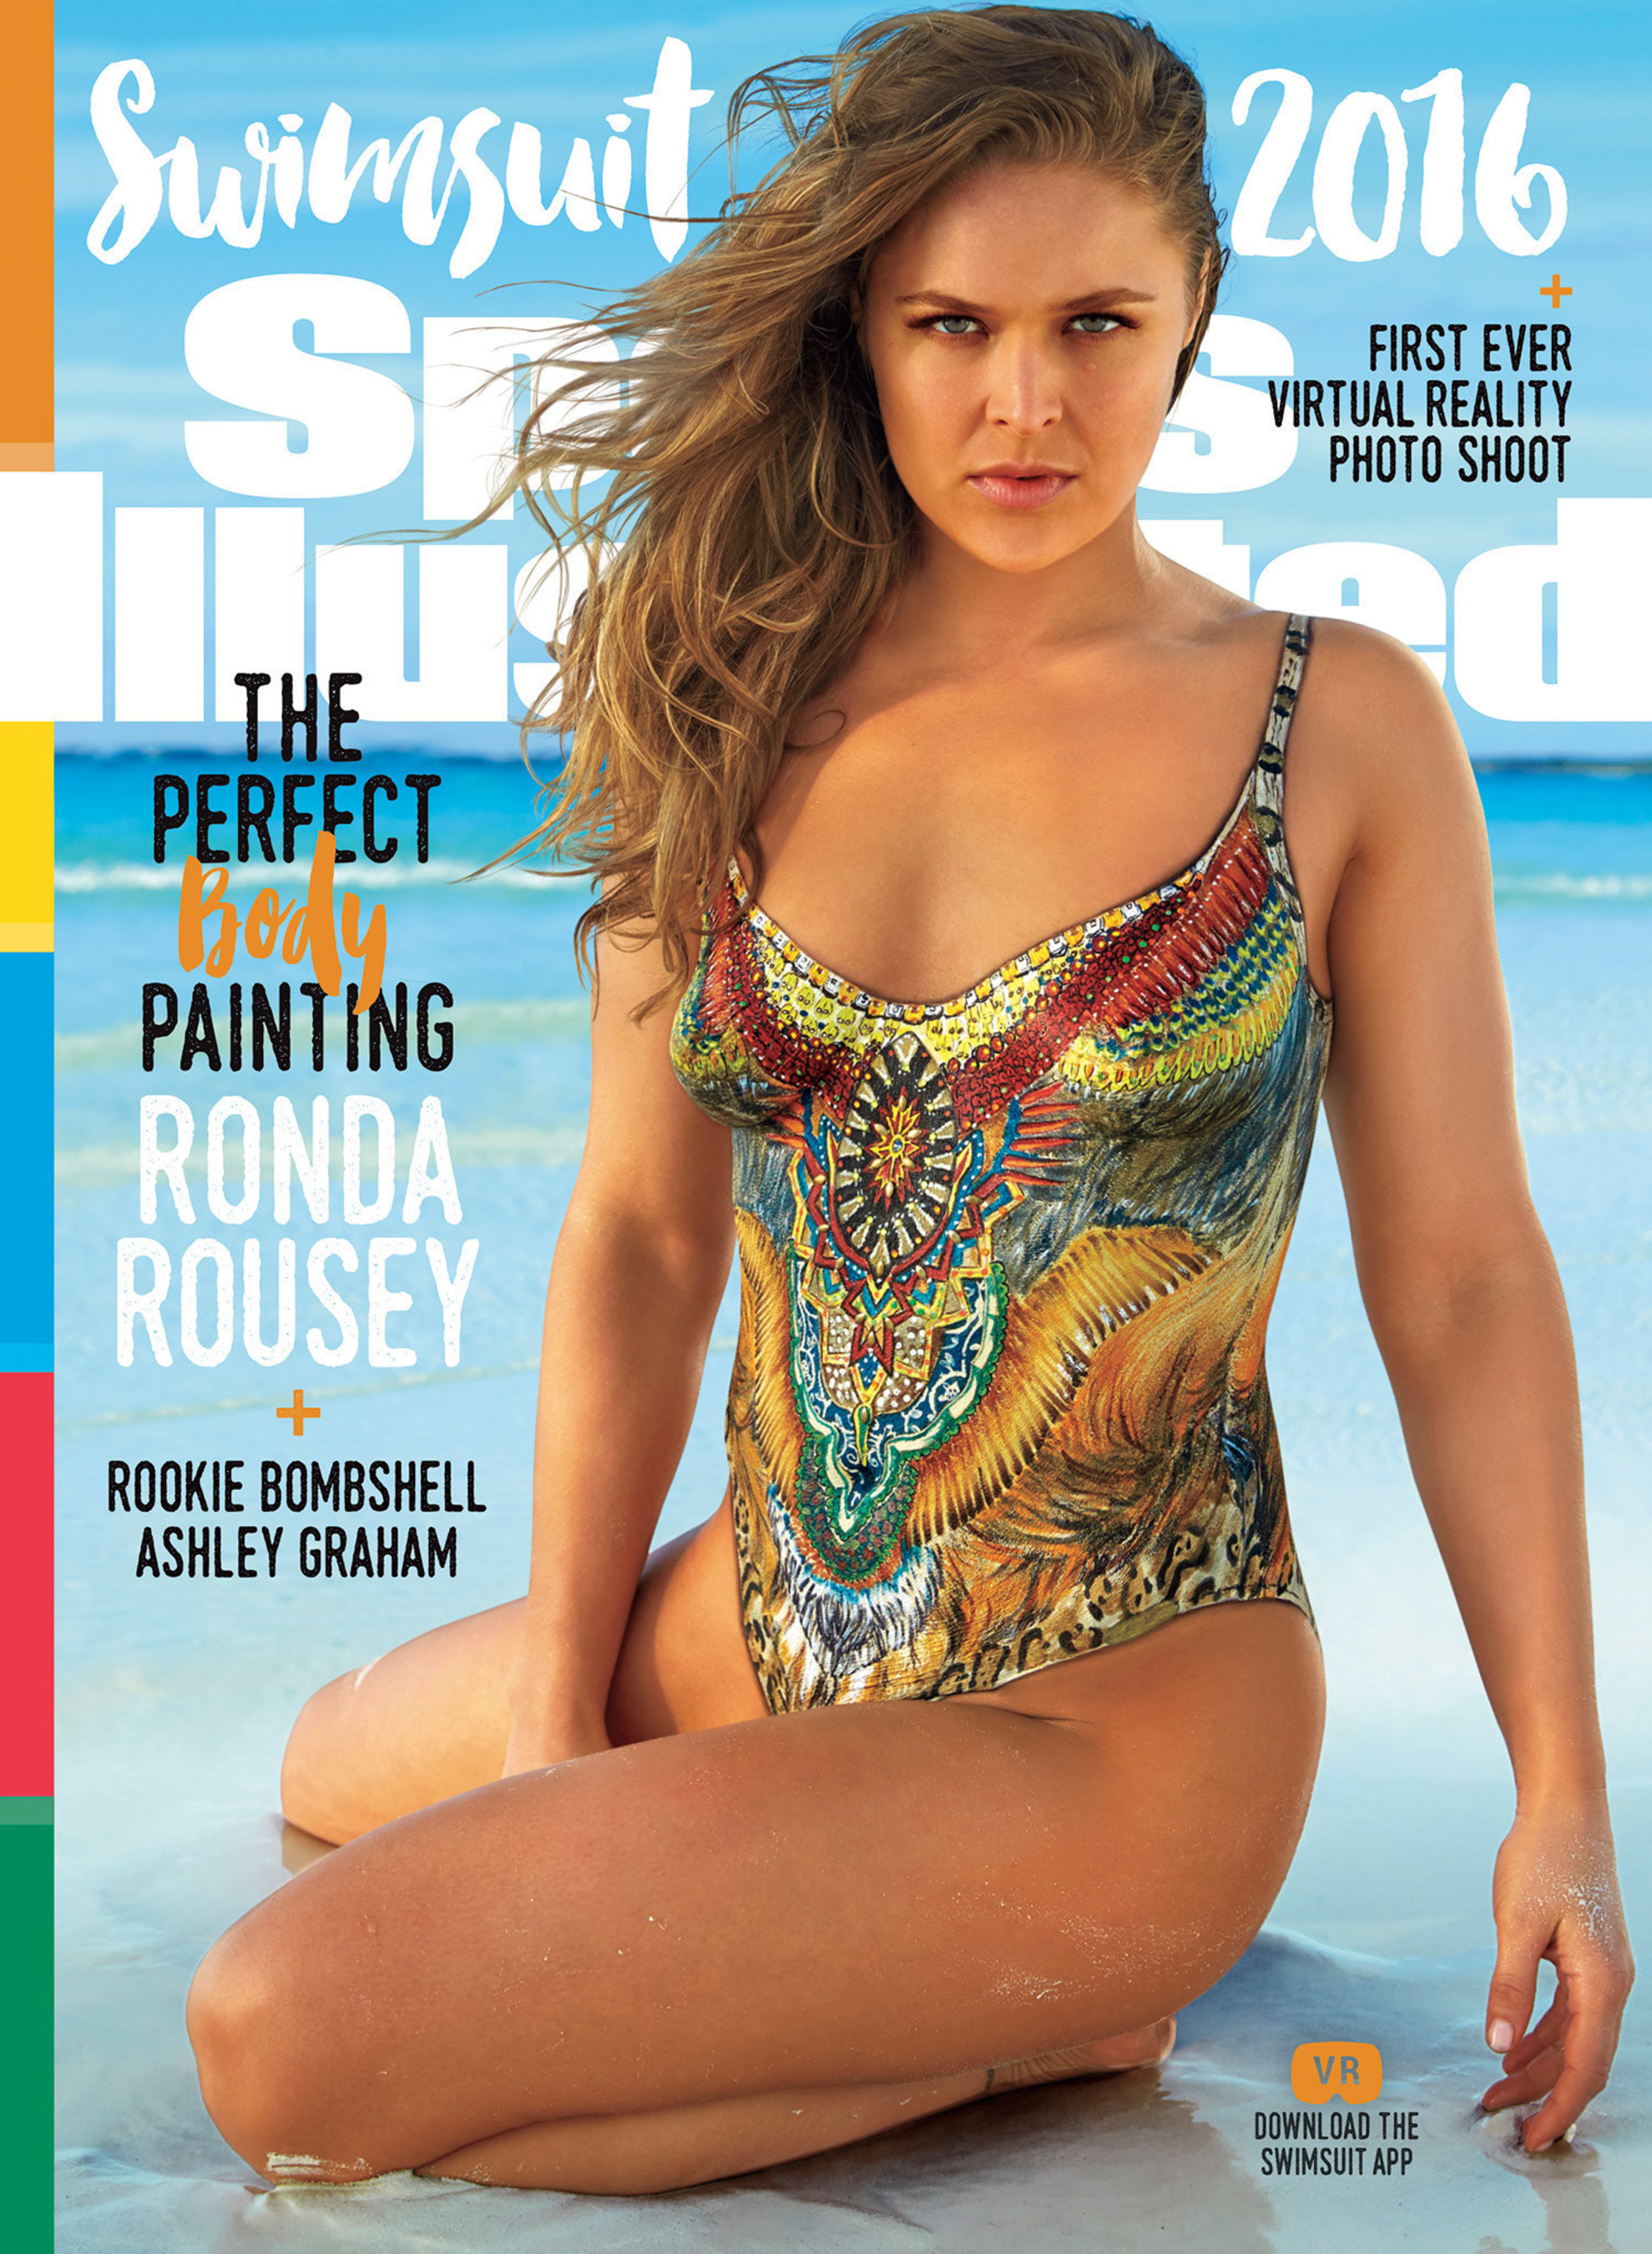 Hailey Clauson, Ashley Graham and Ronda Rousey Unveiled on TNT Special! A Sports Illustrated Swimsuit First! Three Covers; Three Cover Models